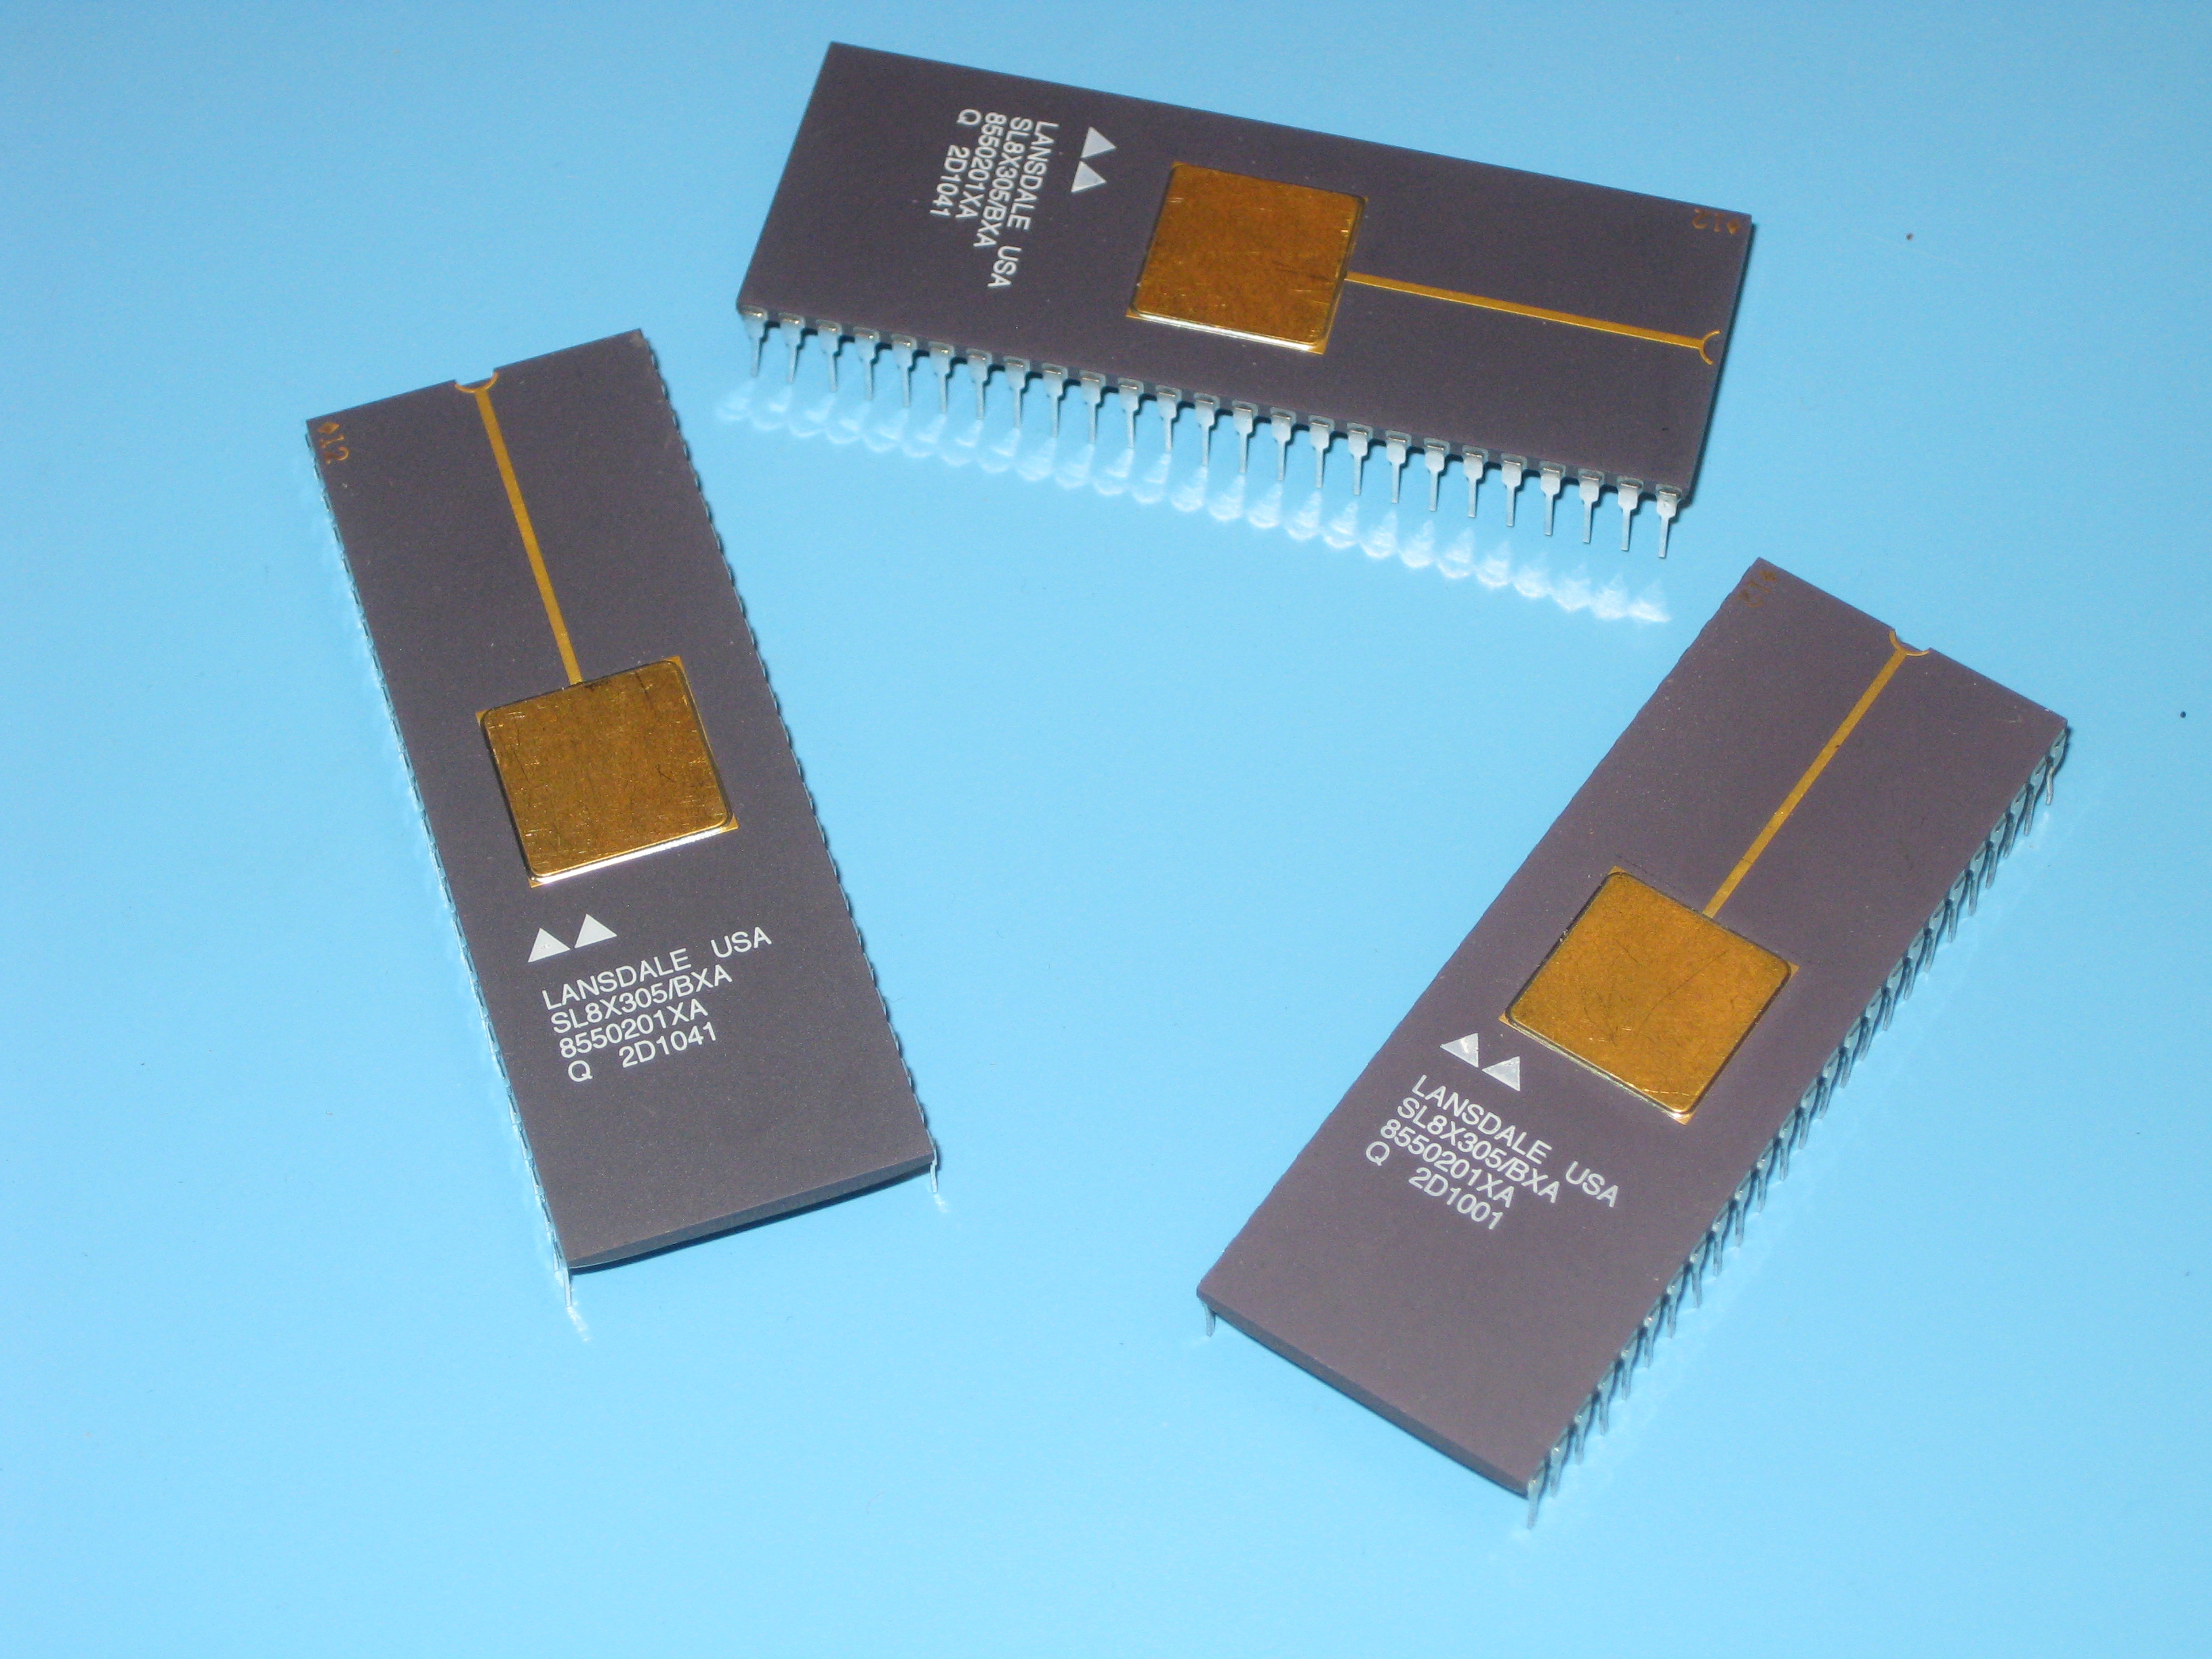 Signetics 8x305 Bipolar Lsi Microcontroller Single Chip Divider Circuit The Is A Highspeed Microprocessor Implemented With Lowpower Schottky Technology In